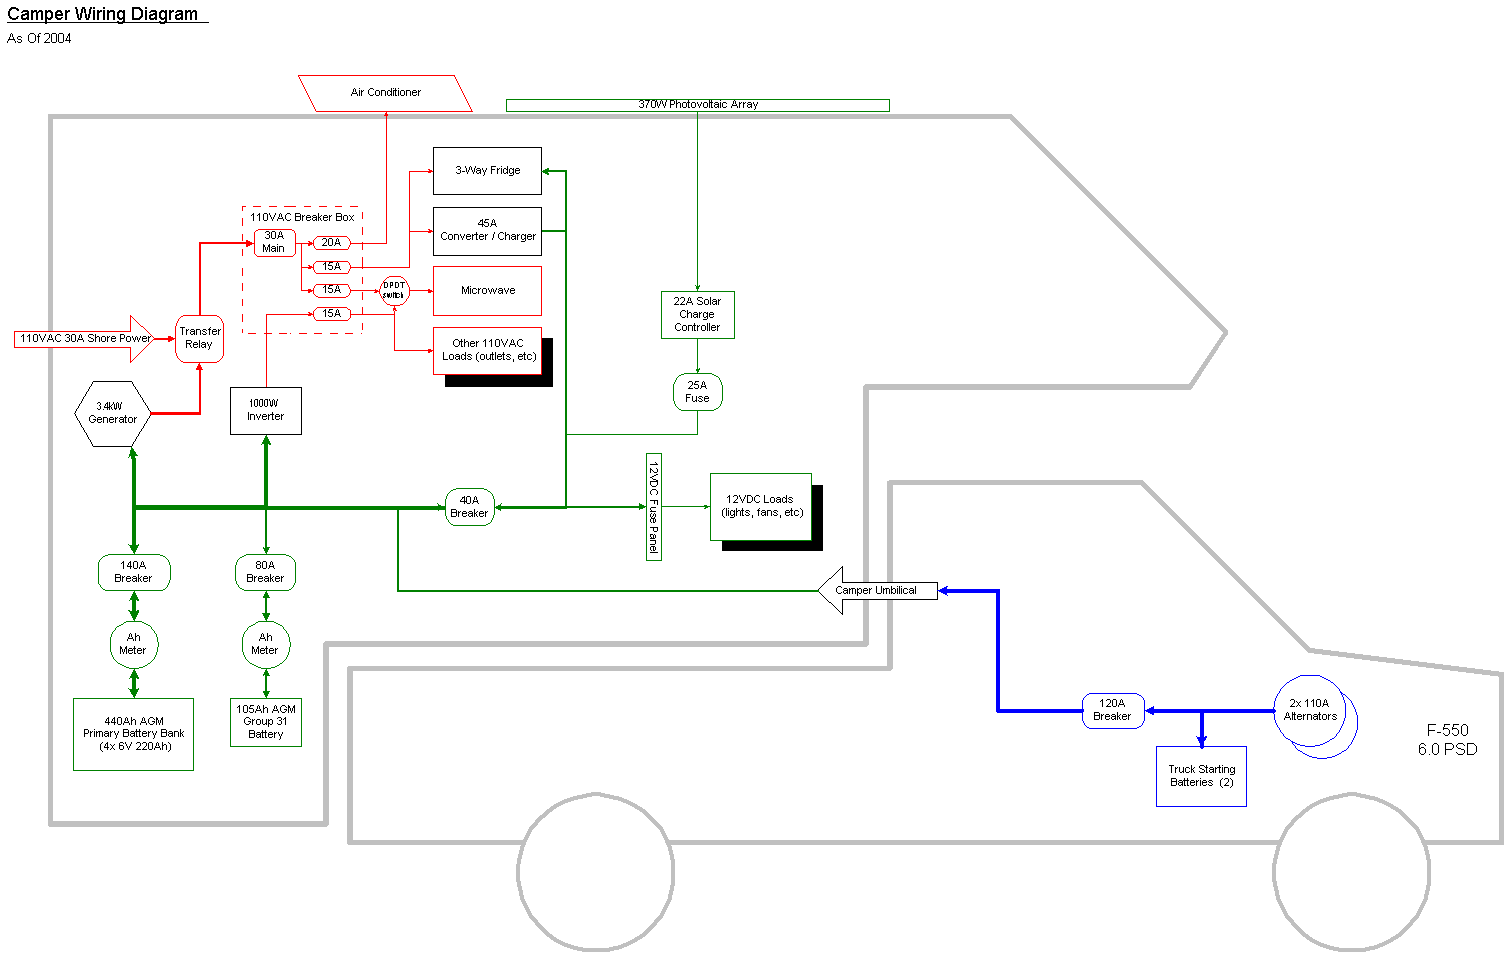 2004Diagram rv wiring diagrams 6 pole round wiring diagram \u2022 wiring diagrams truck camper wiring harness at pacquiaovsvargaslive.co